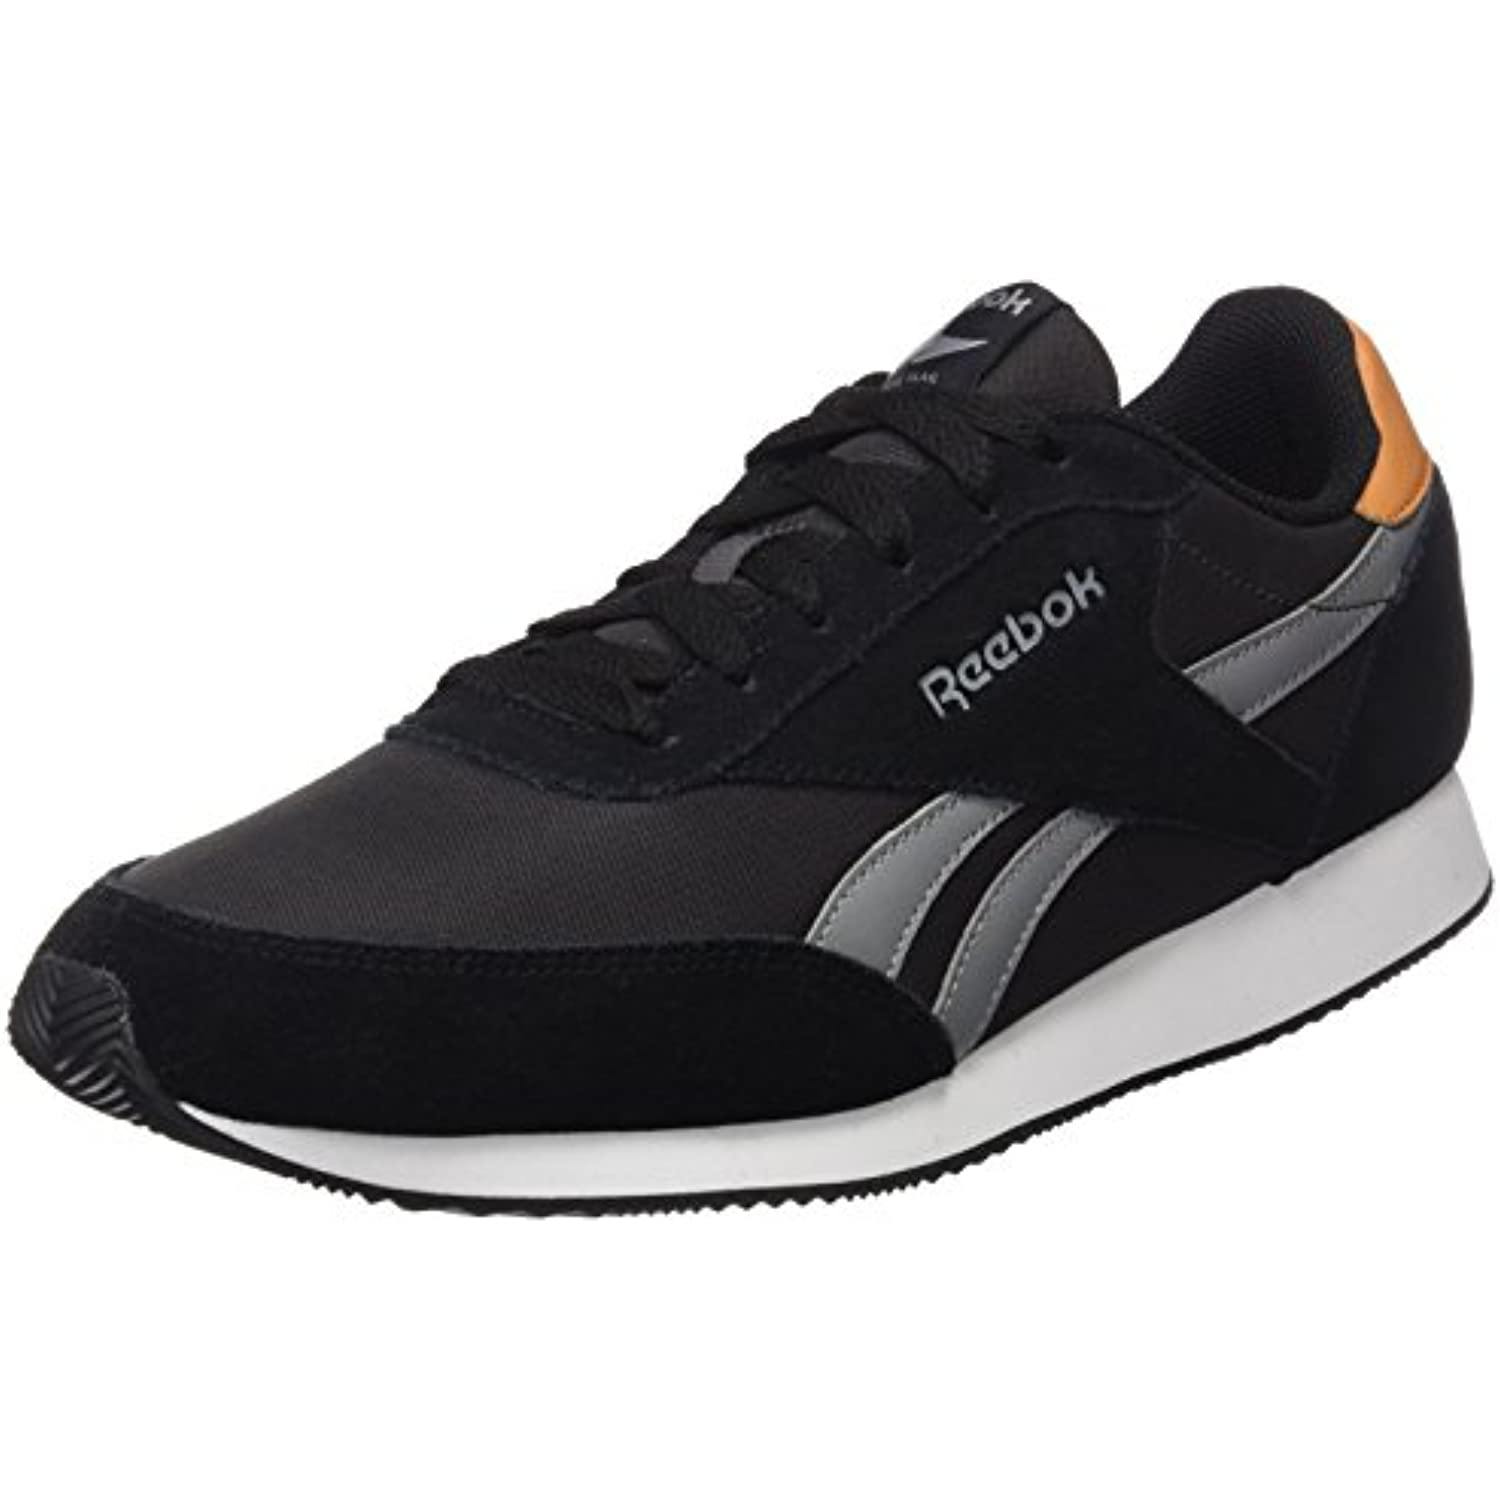 Reebok Royal Classic Jogger 2, Sneakers Basses Homme - - - B0725ZFLF1 - 2a3759